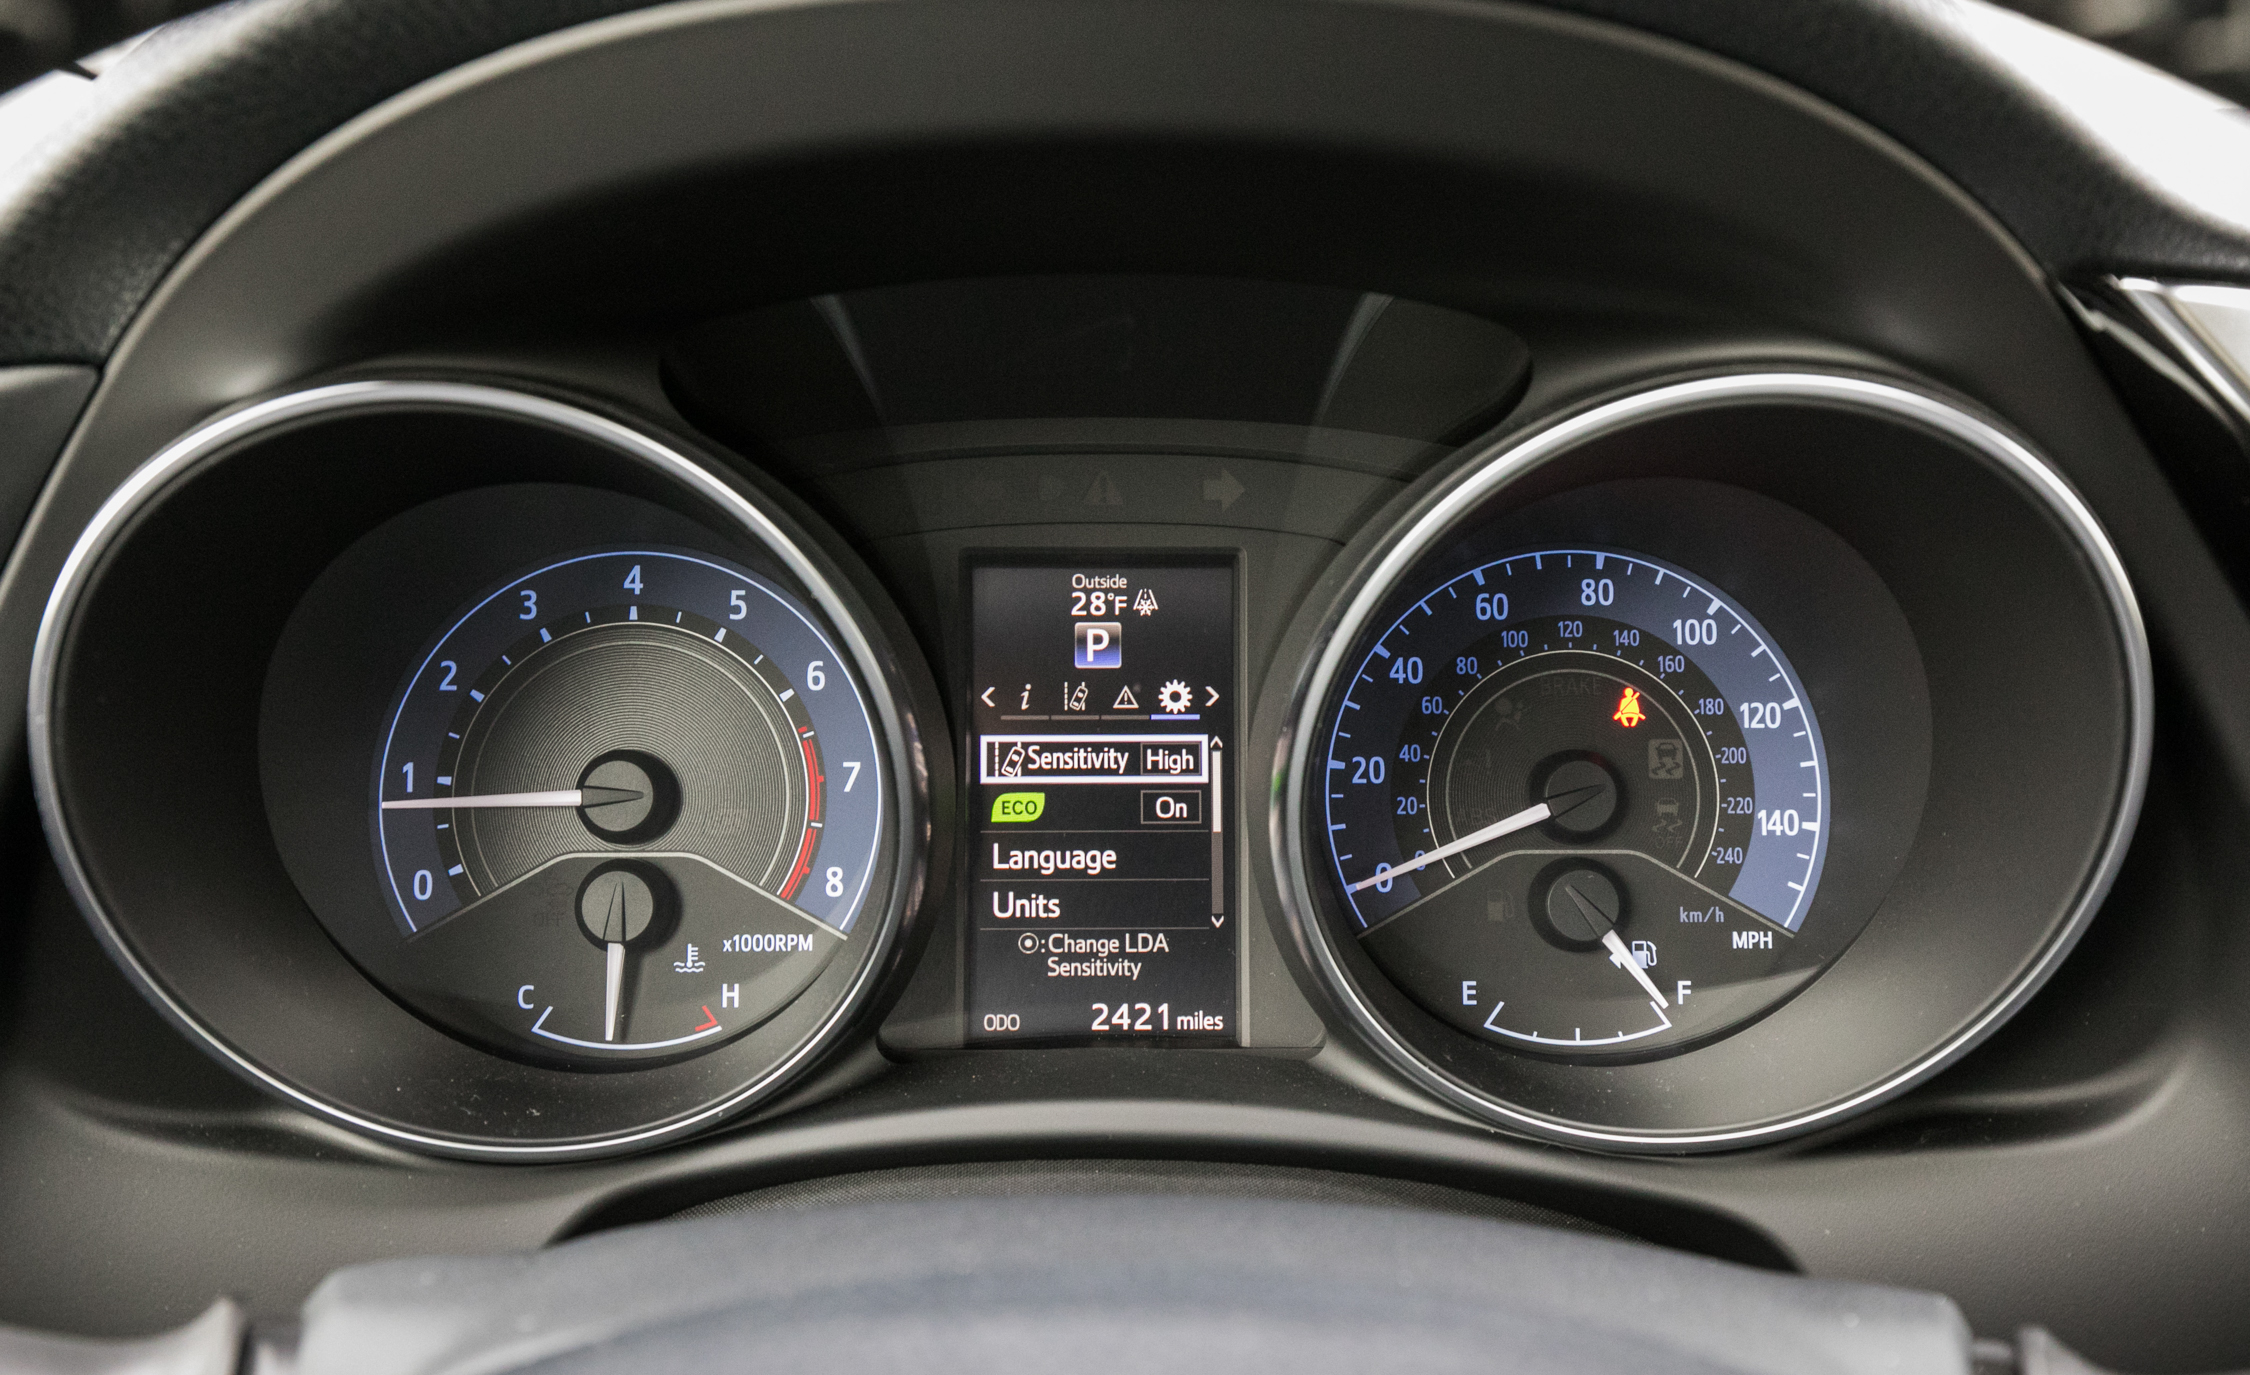 2017 Toyota Corolla IM Hatchback Interior View Speedometer Instrument Cluster (Photo 46 of 52)